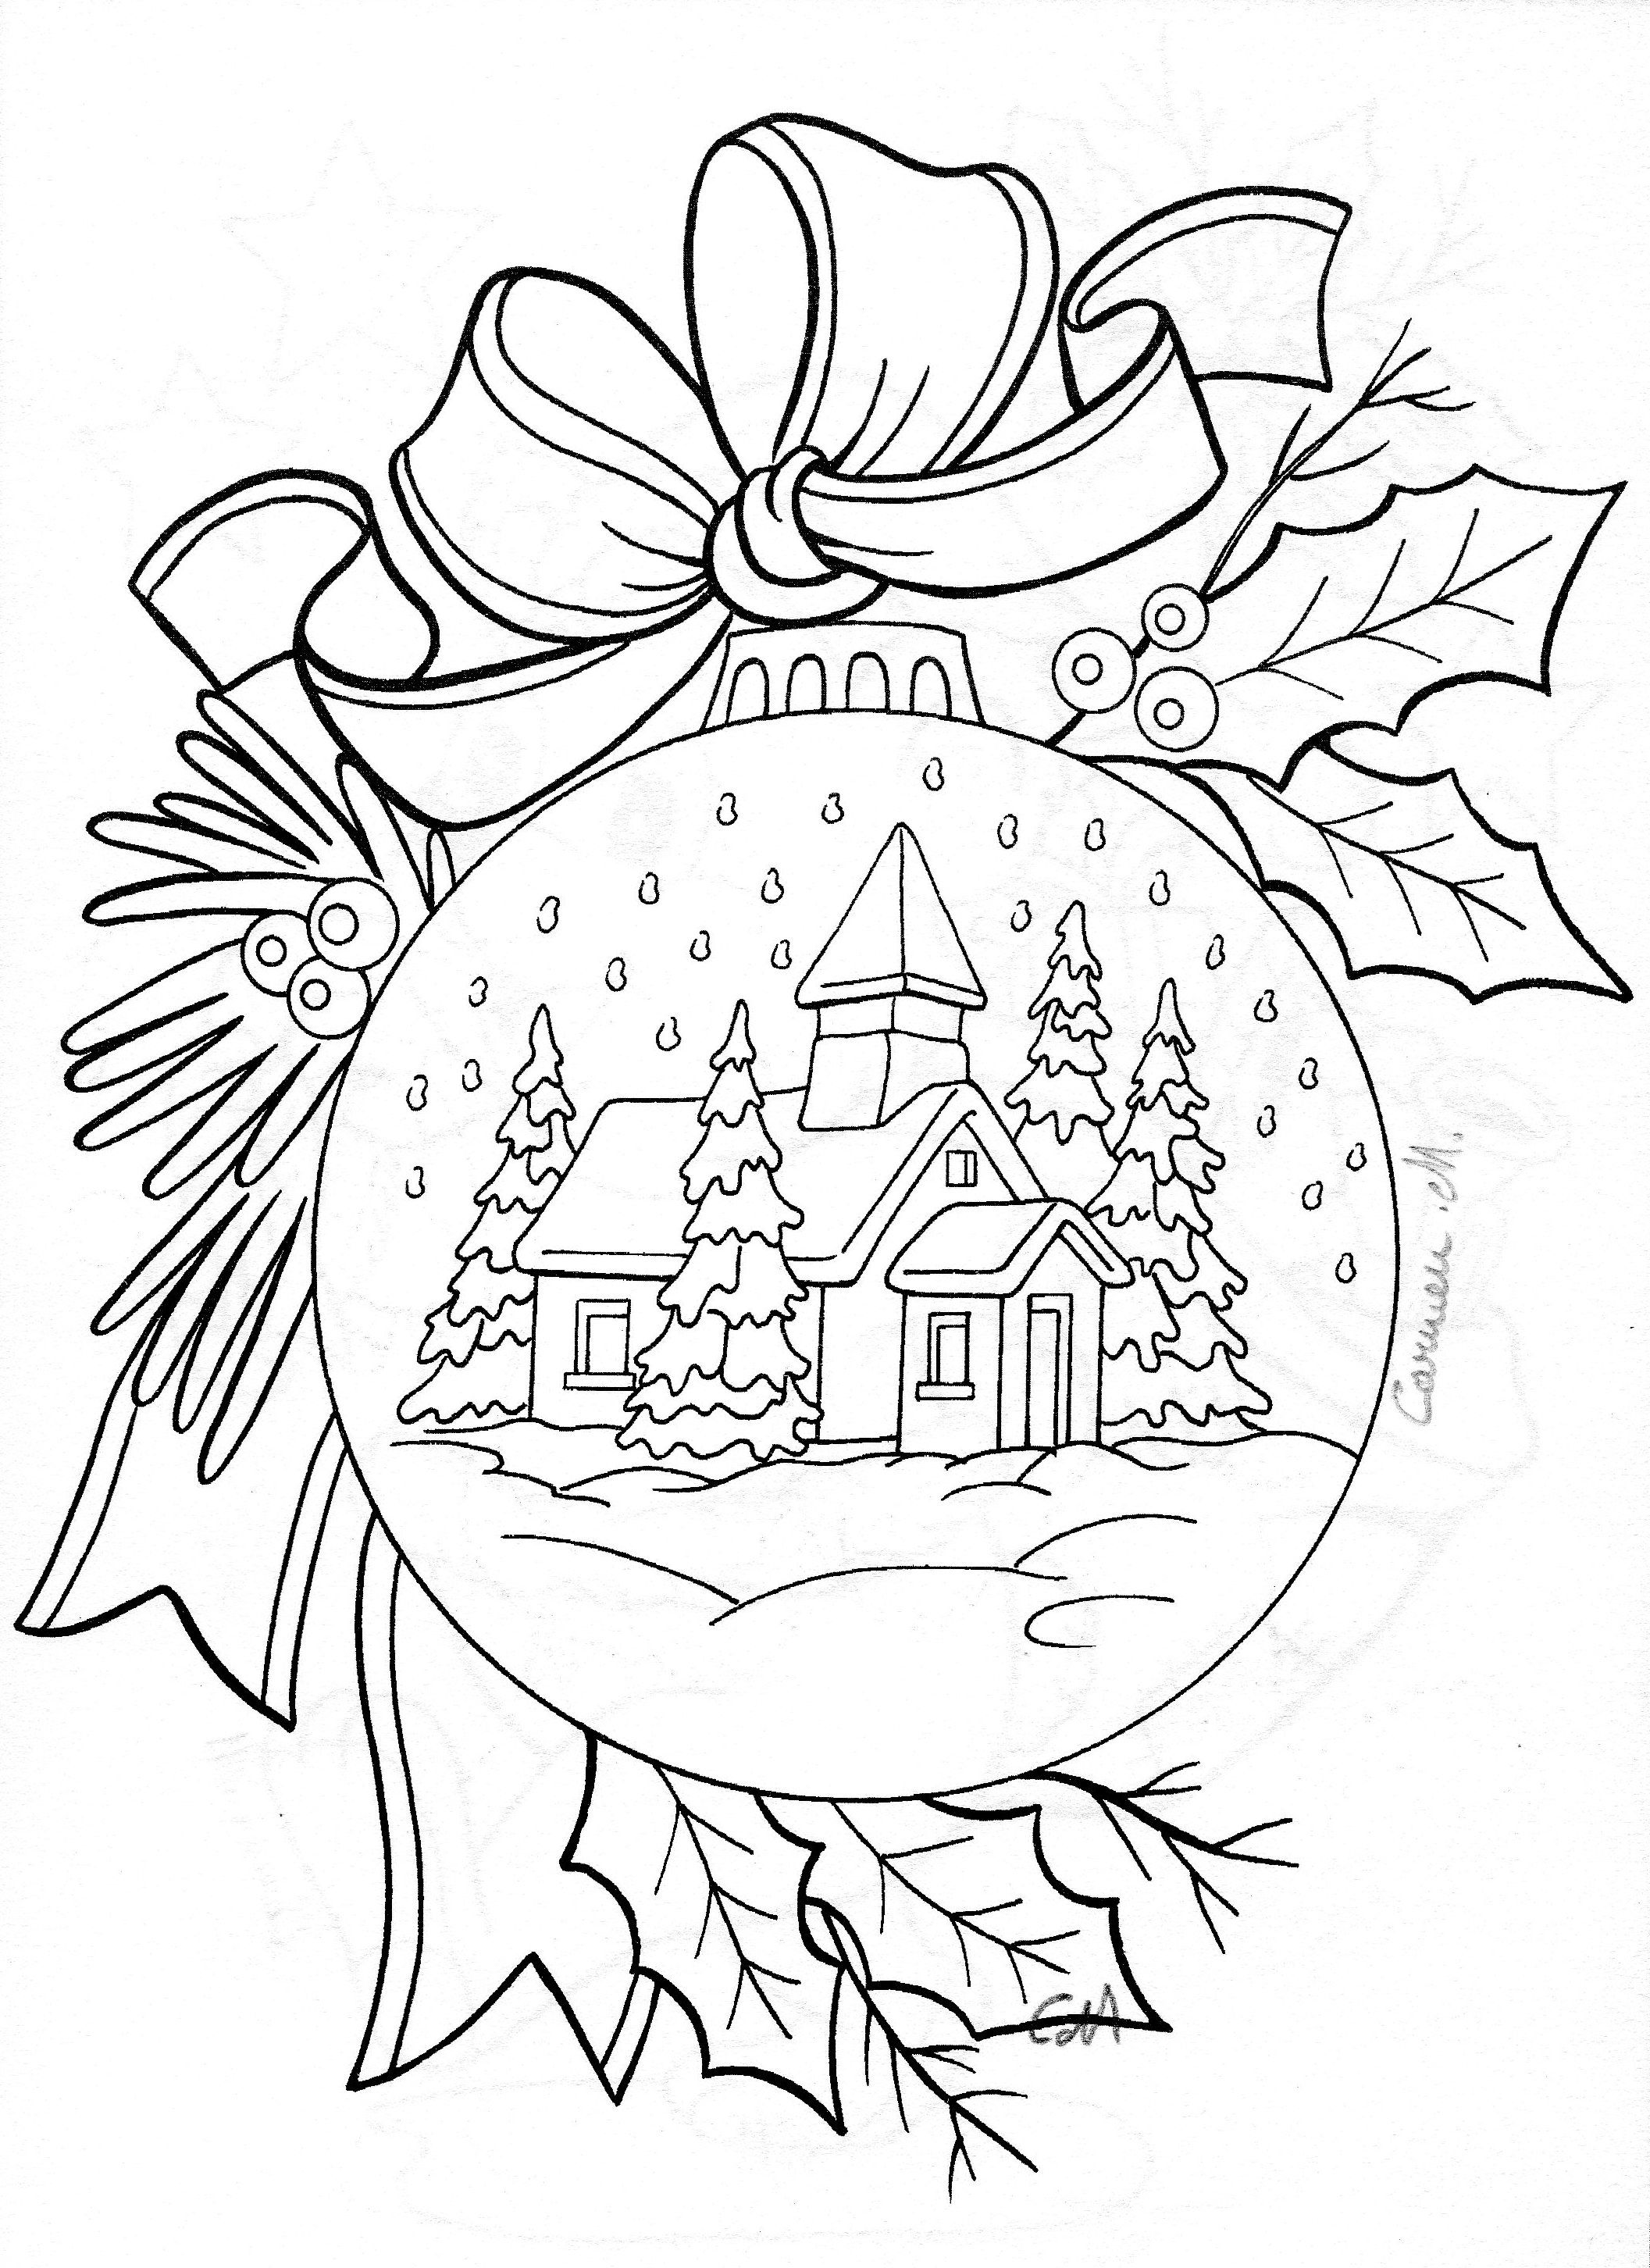 Christmas Village Coloring Book With Pin By Irena Nestor On Szablony Pinterest Ornament